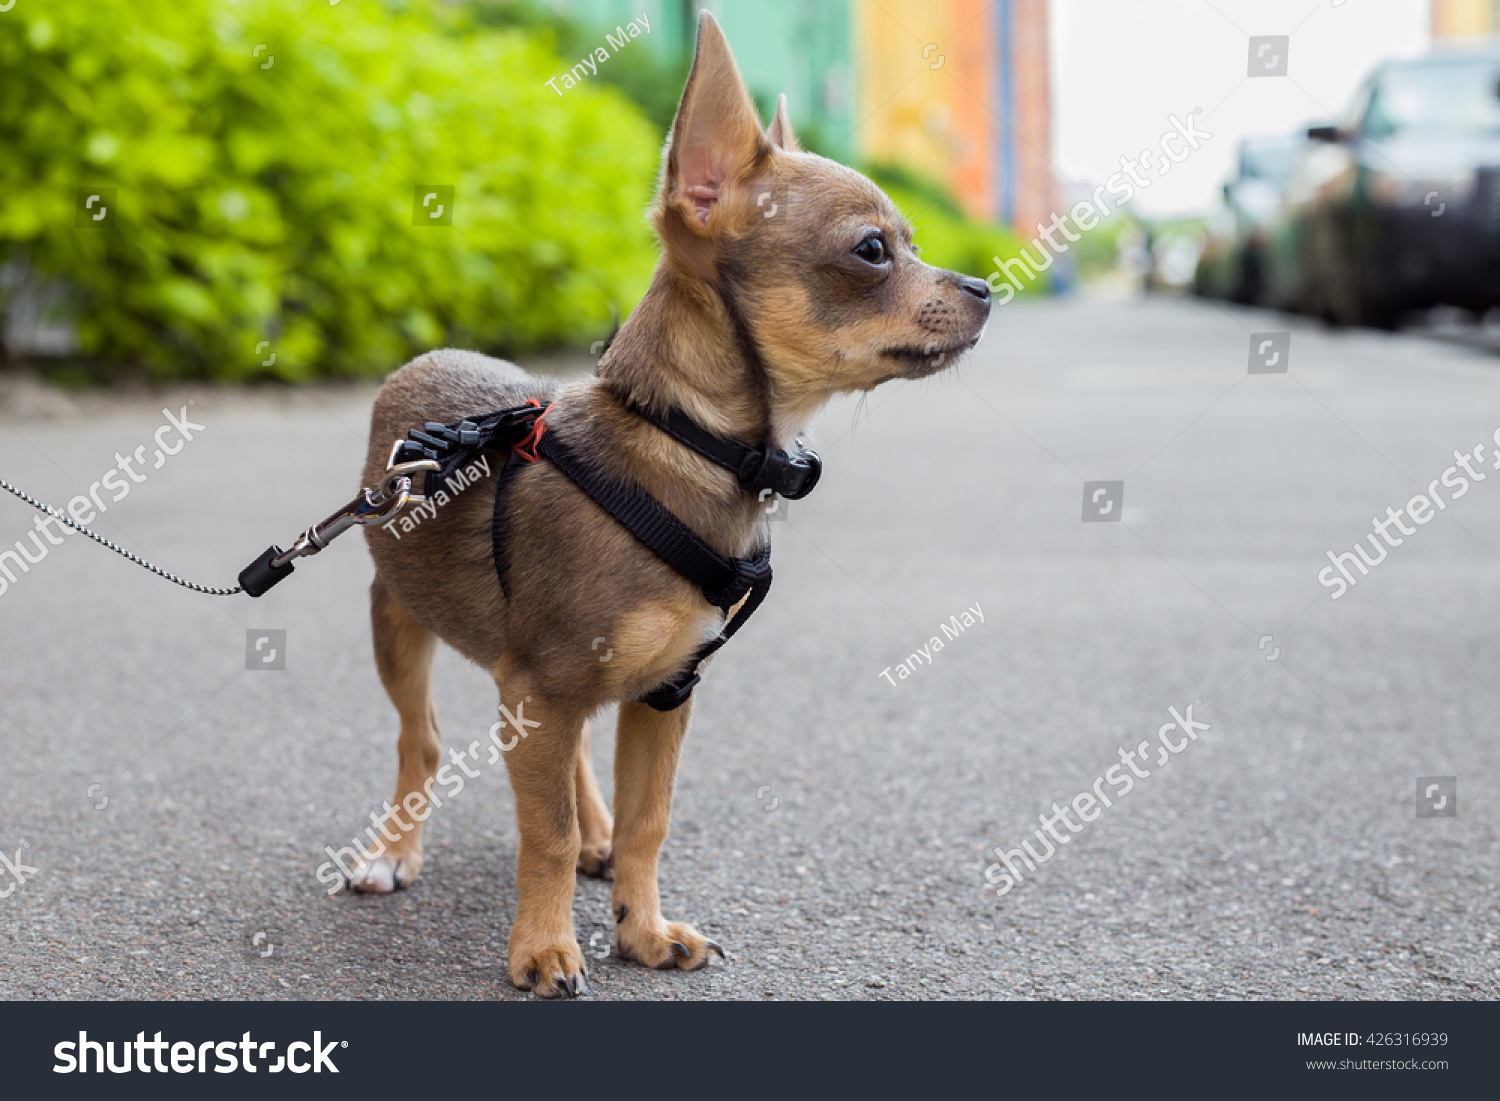 Portrait Tiny Puppy Chihuahua On Street Stock Photo Edit Now 426316939